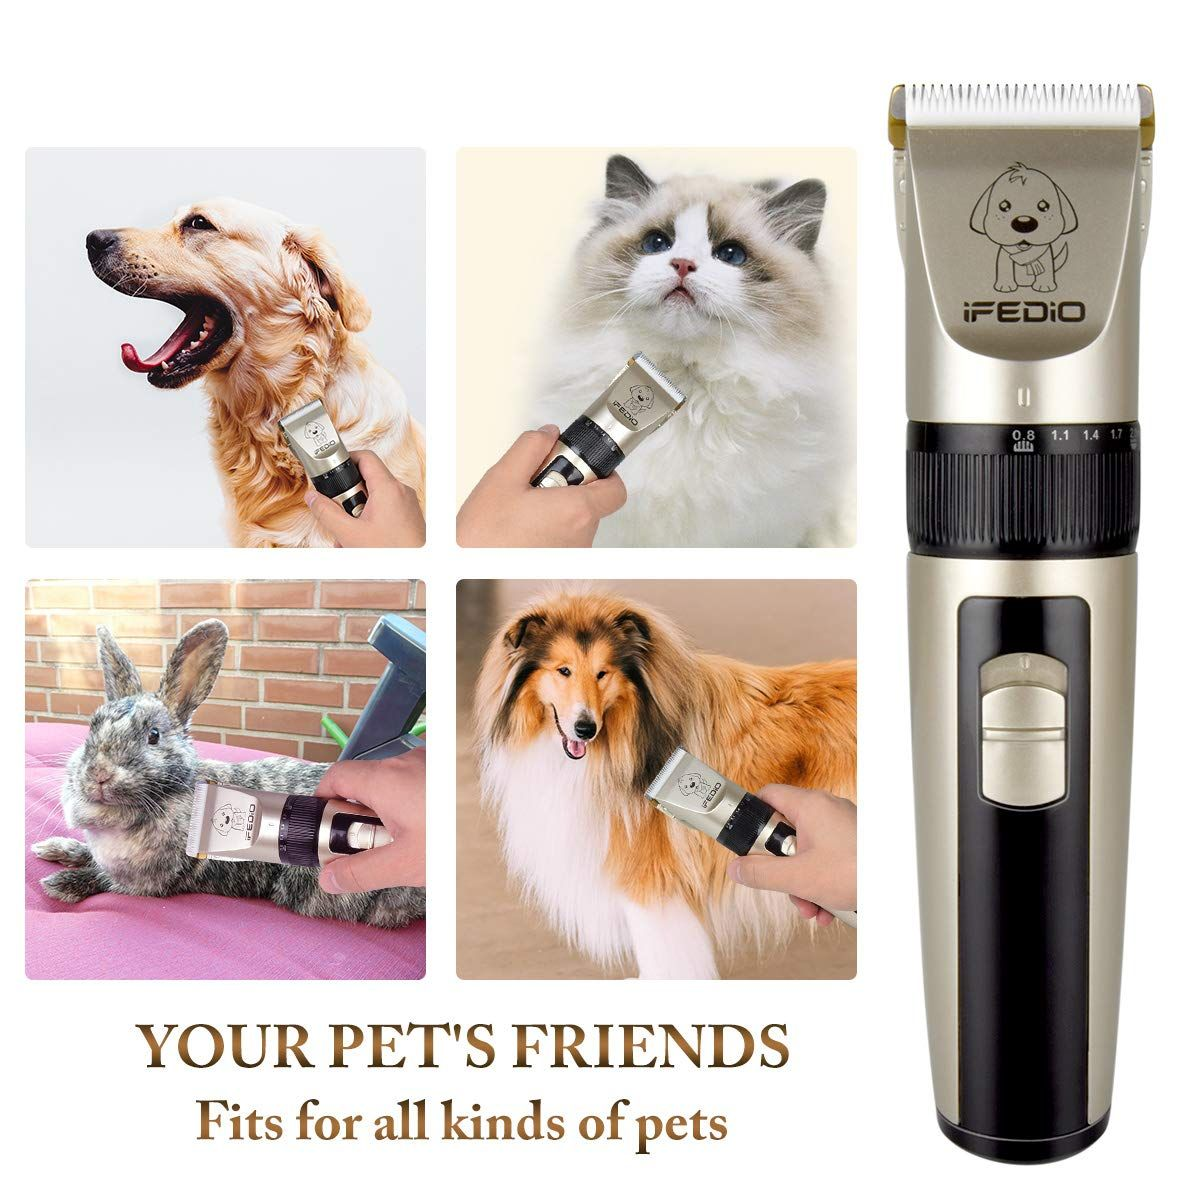 Txpy Professional Dog Clippers Rechargeable Dog Grooming Kit Cordless Pet Grooming Clippers Low Noise Dog Grooming Clippers Dog Grooming Supplies Dog Grooming